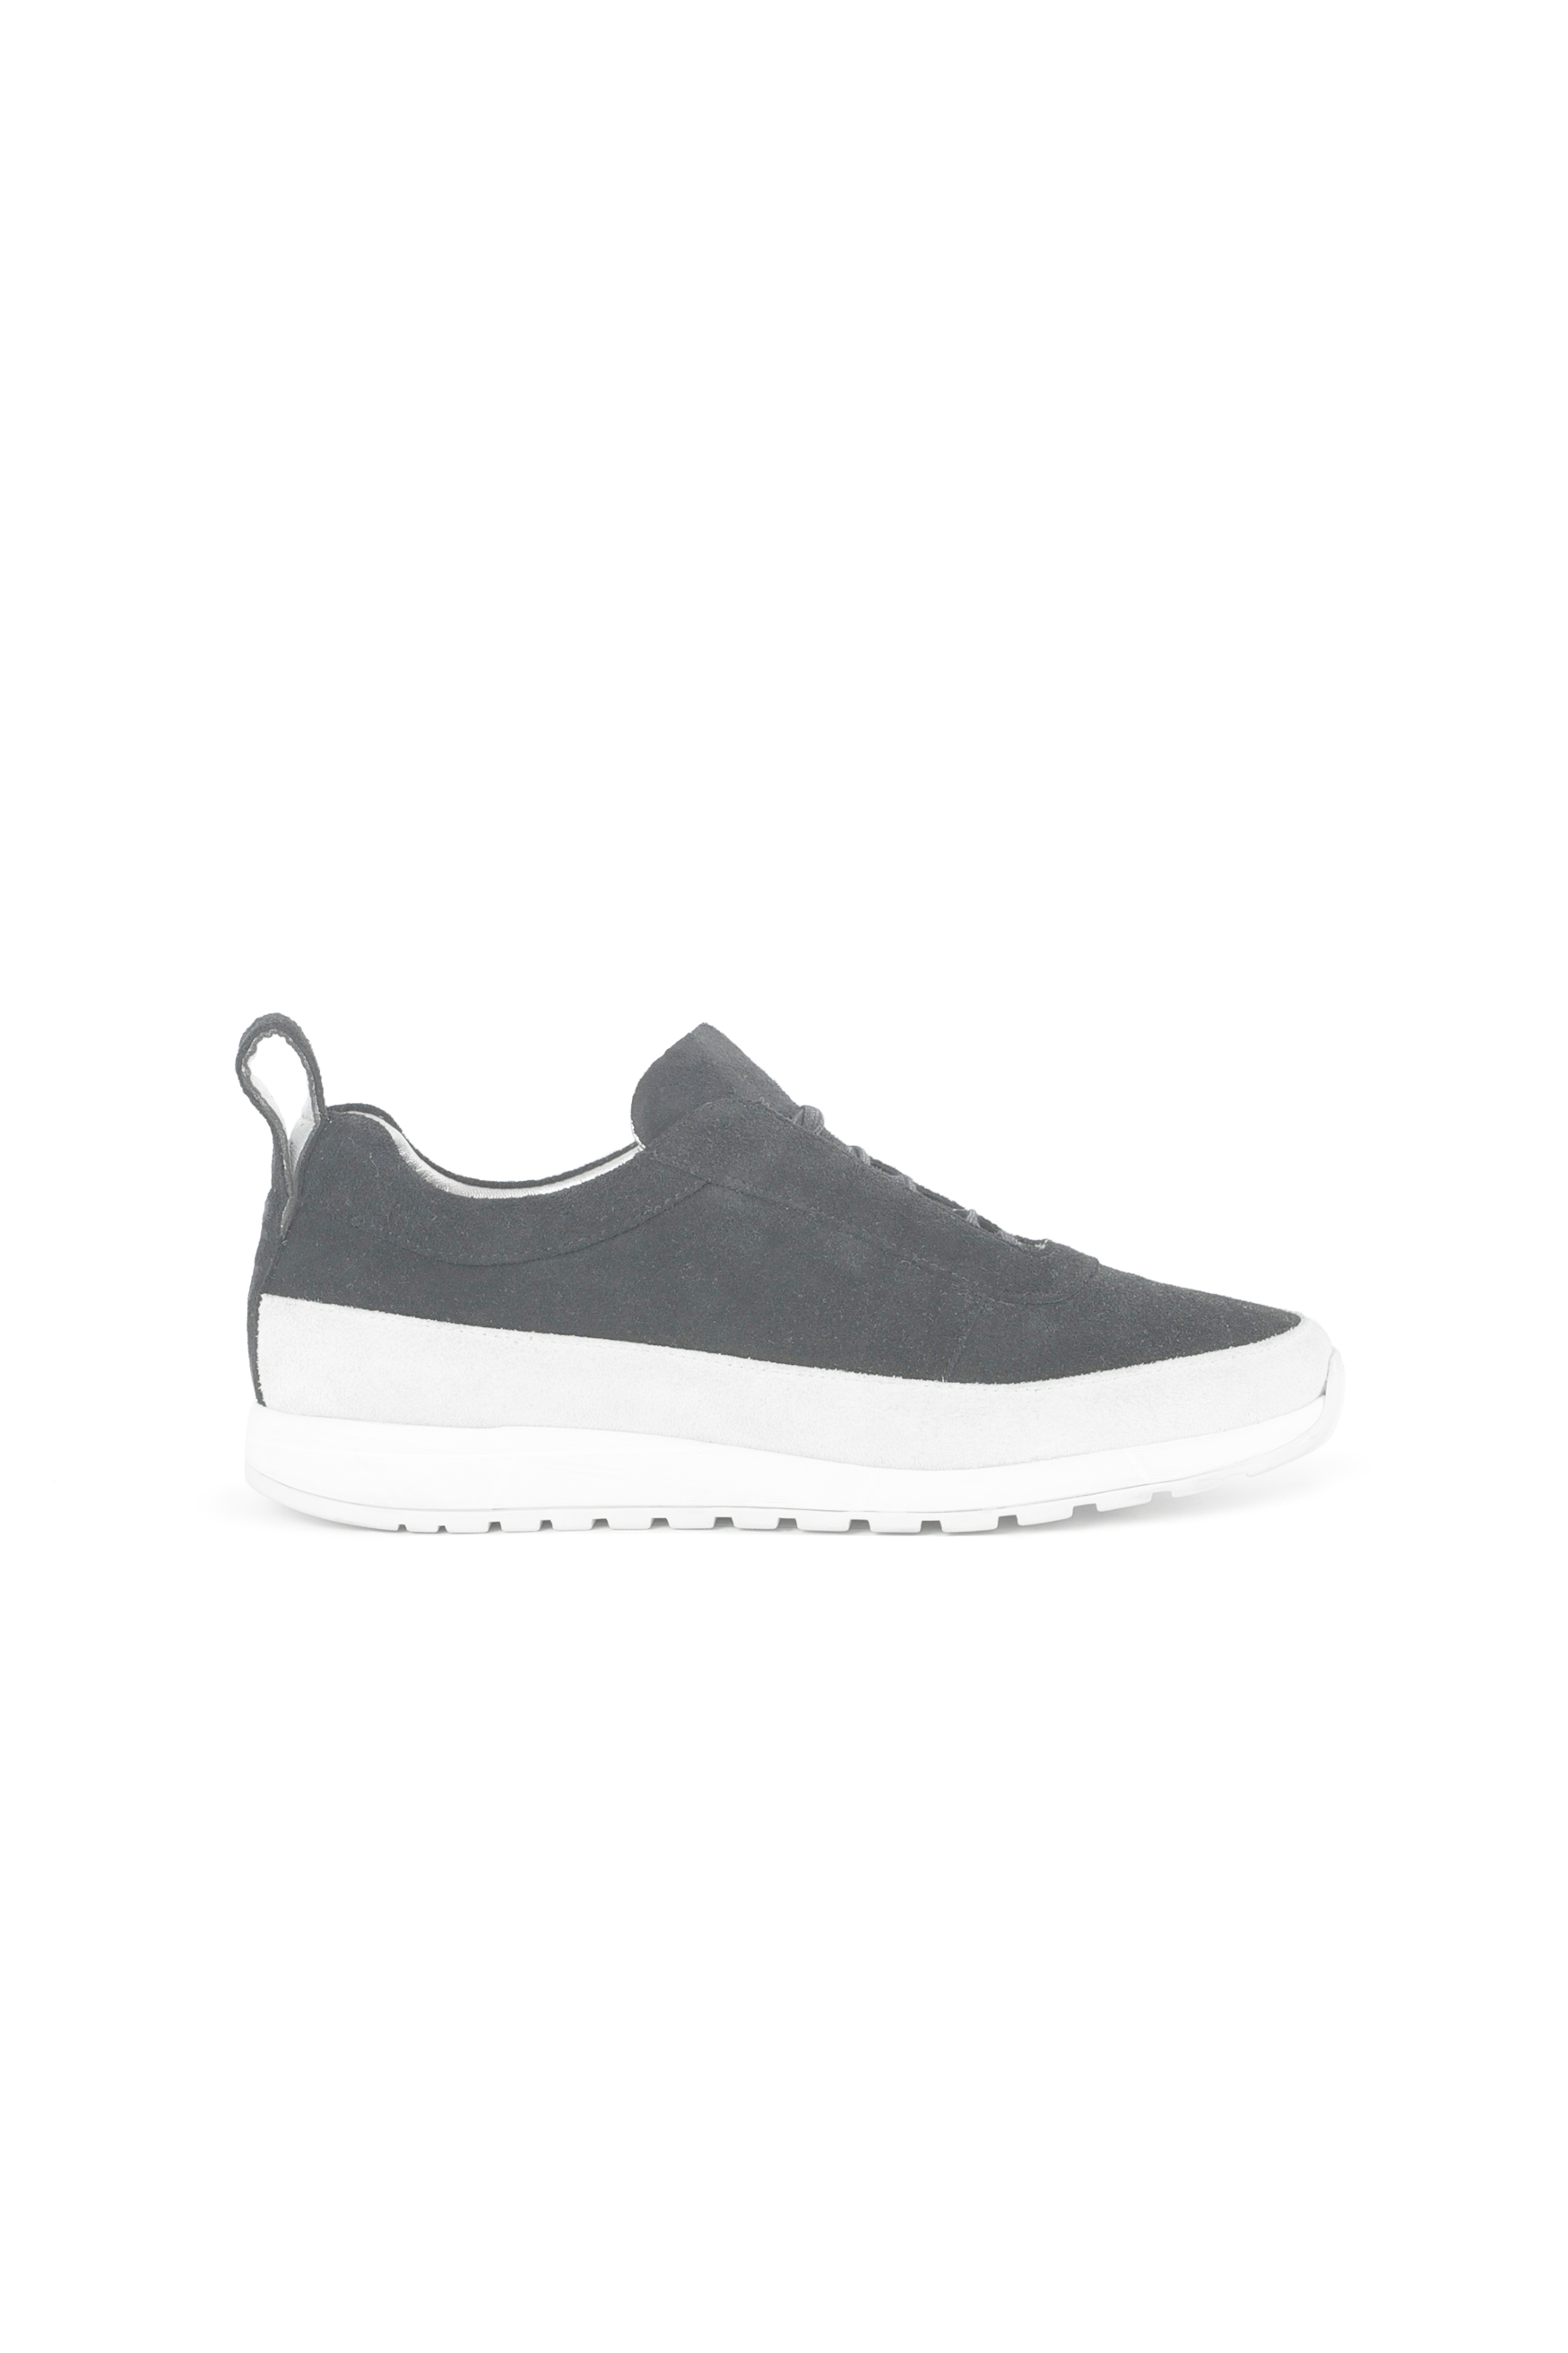 Armani Green Sudede Shoes With White Base For Men